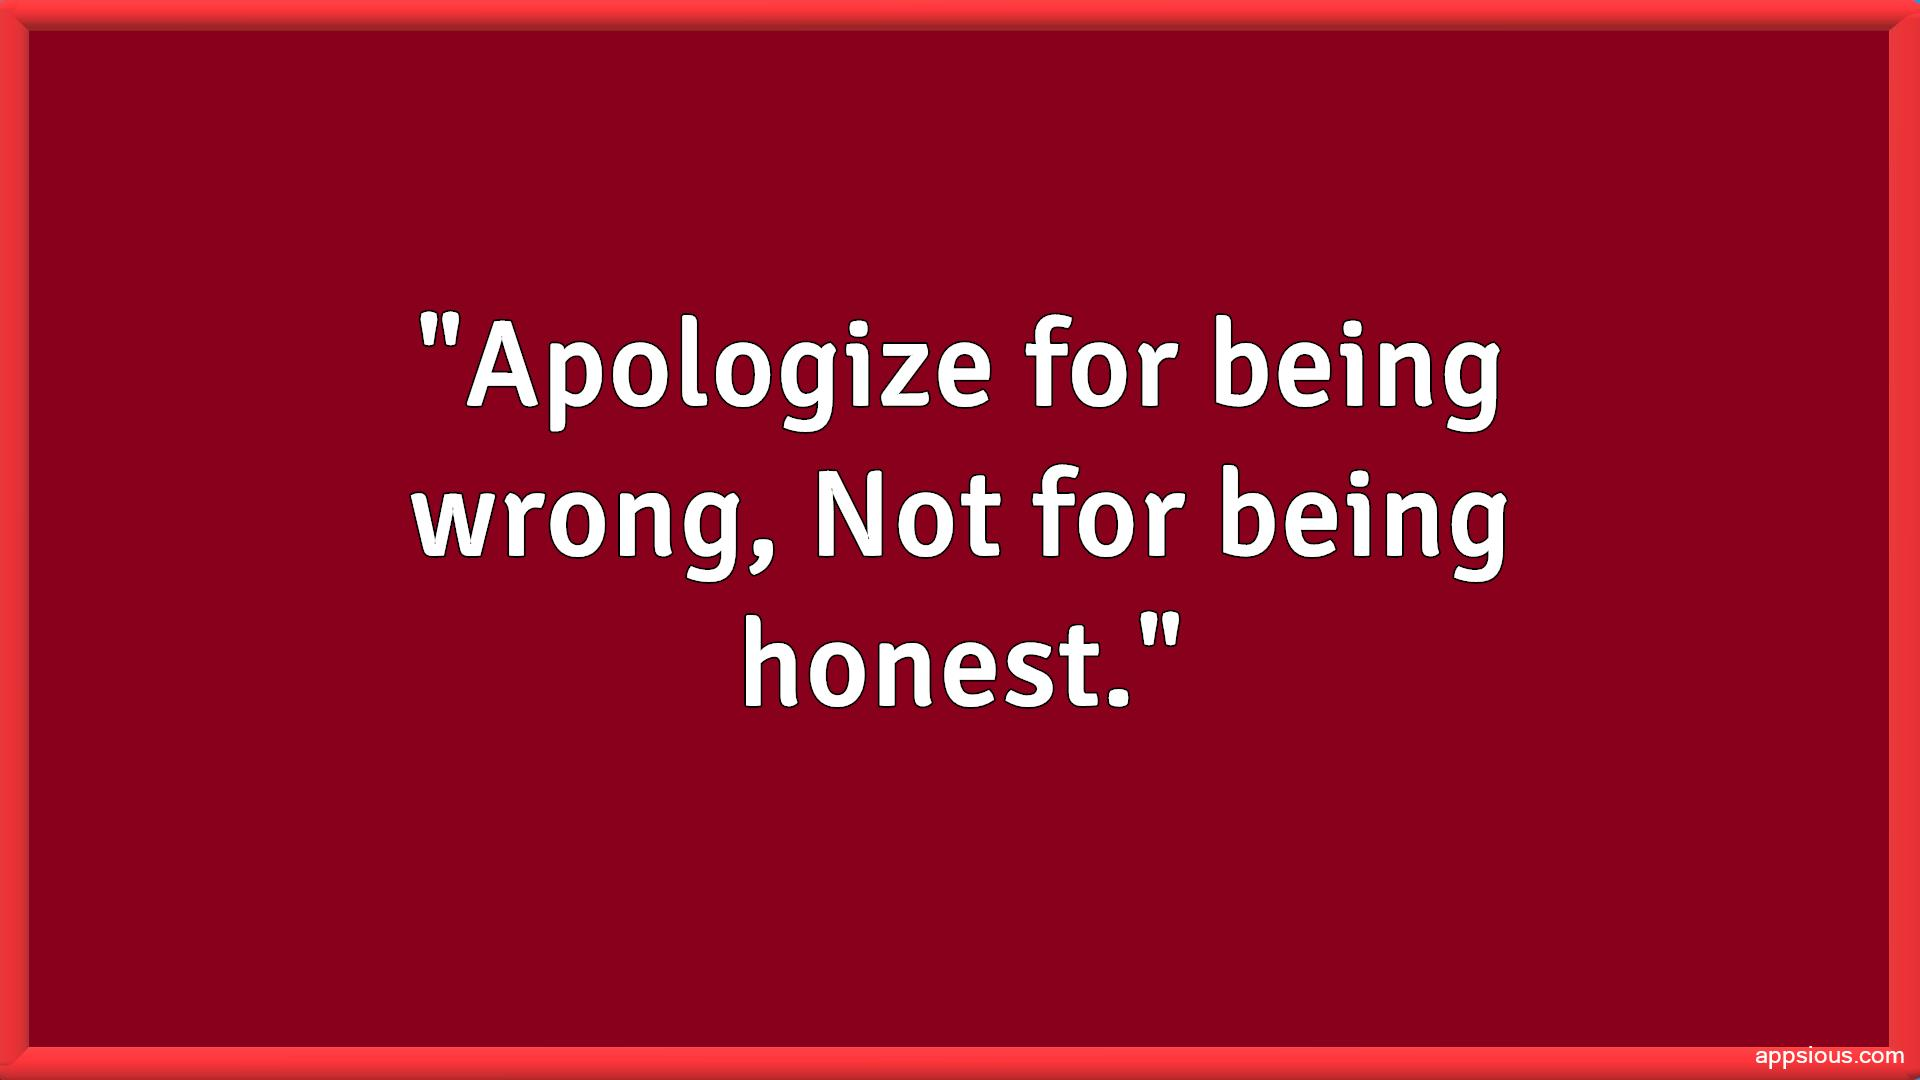 Apologize for being wrong, Not for being honest.